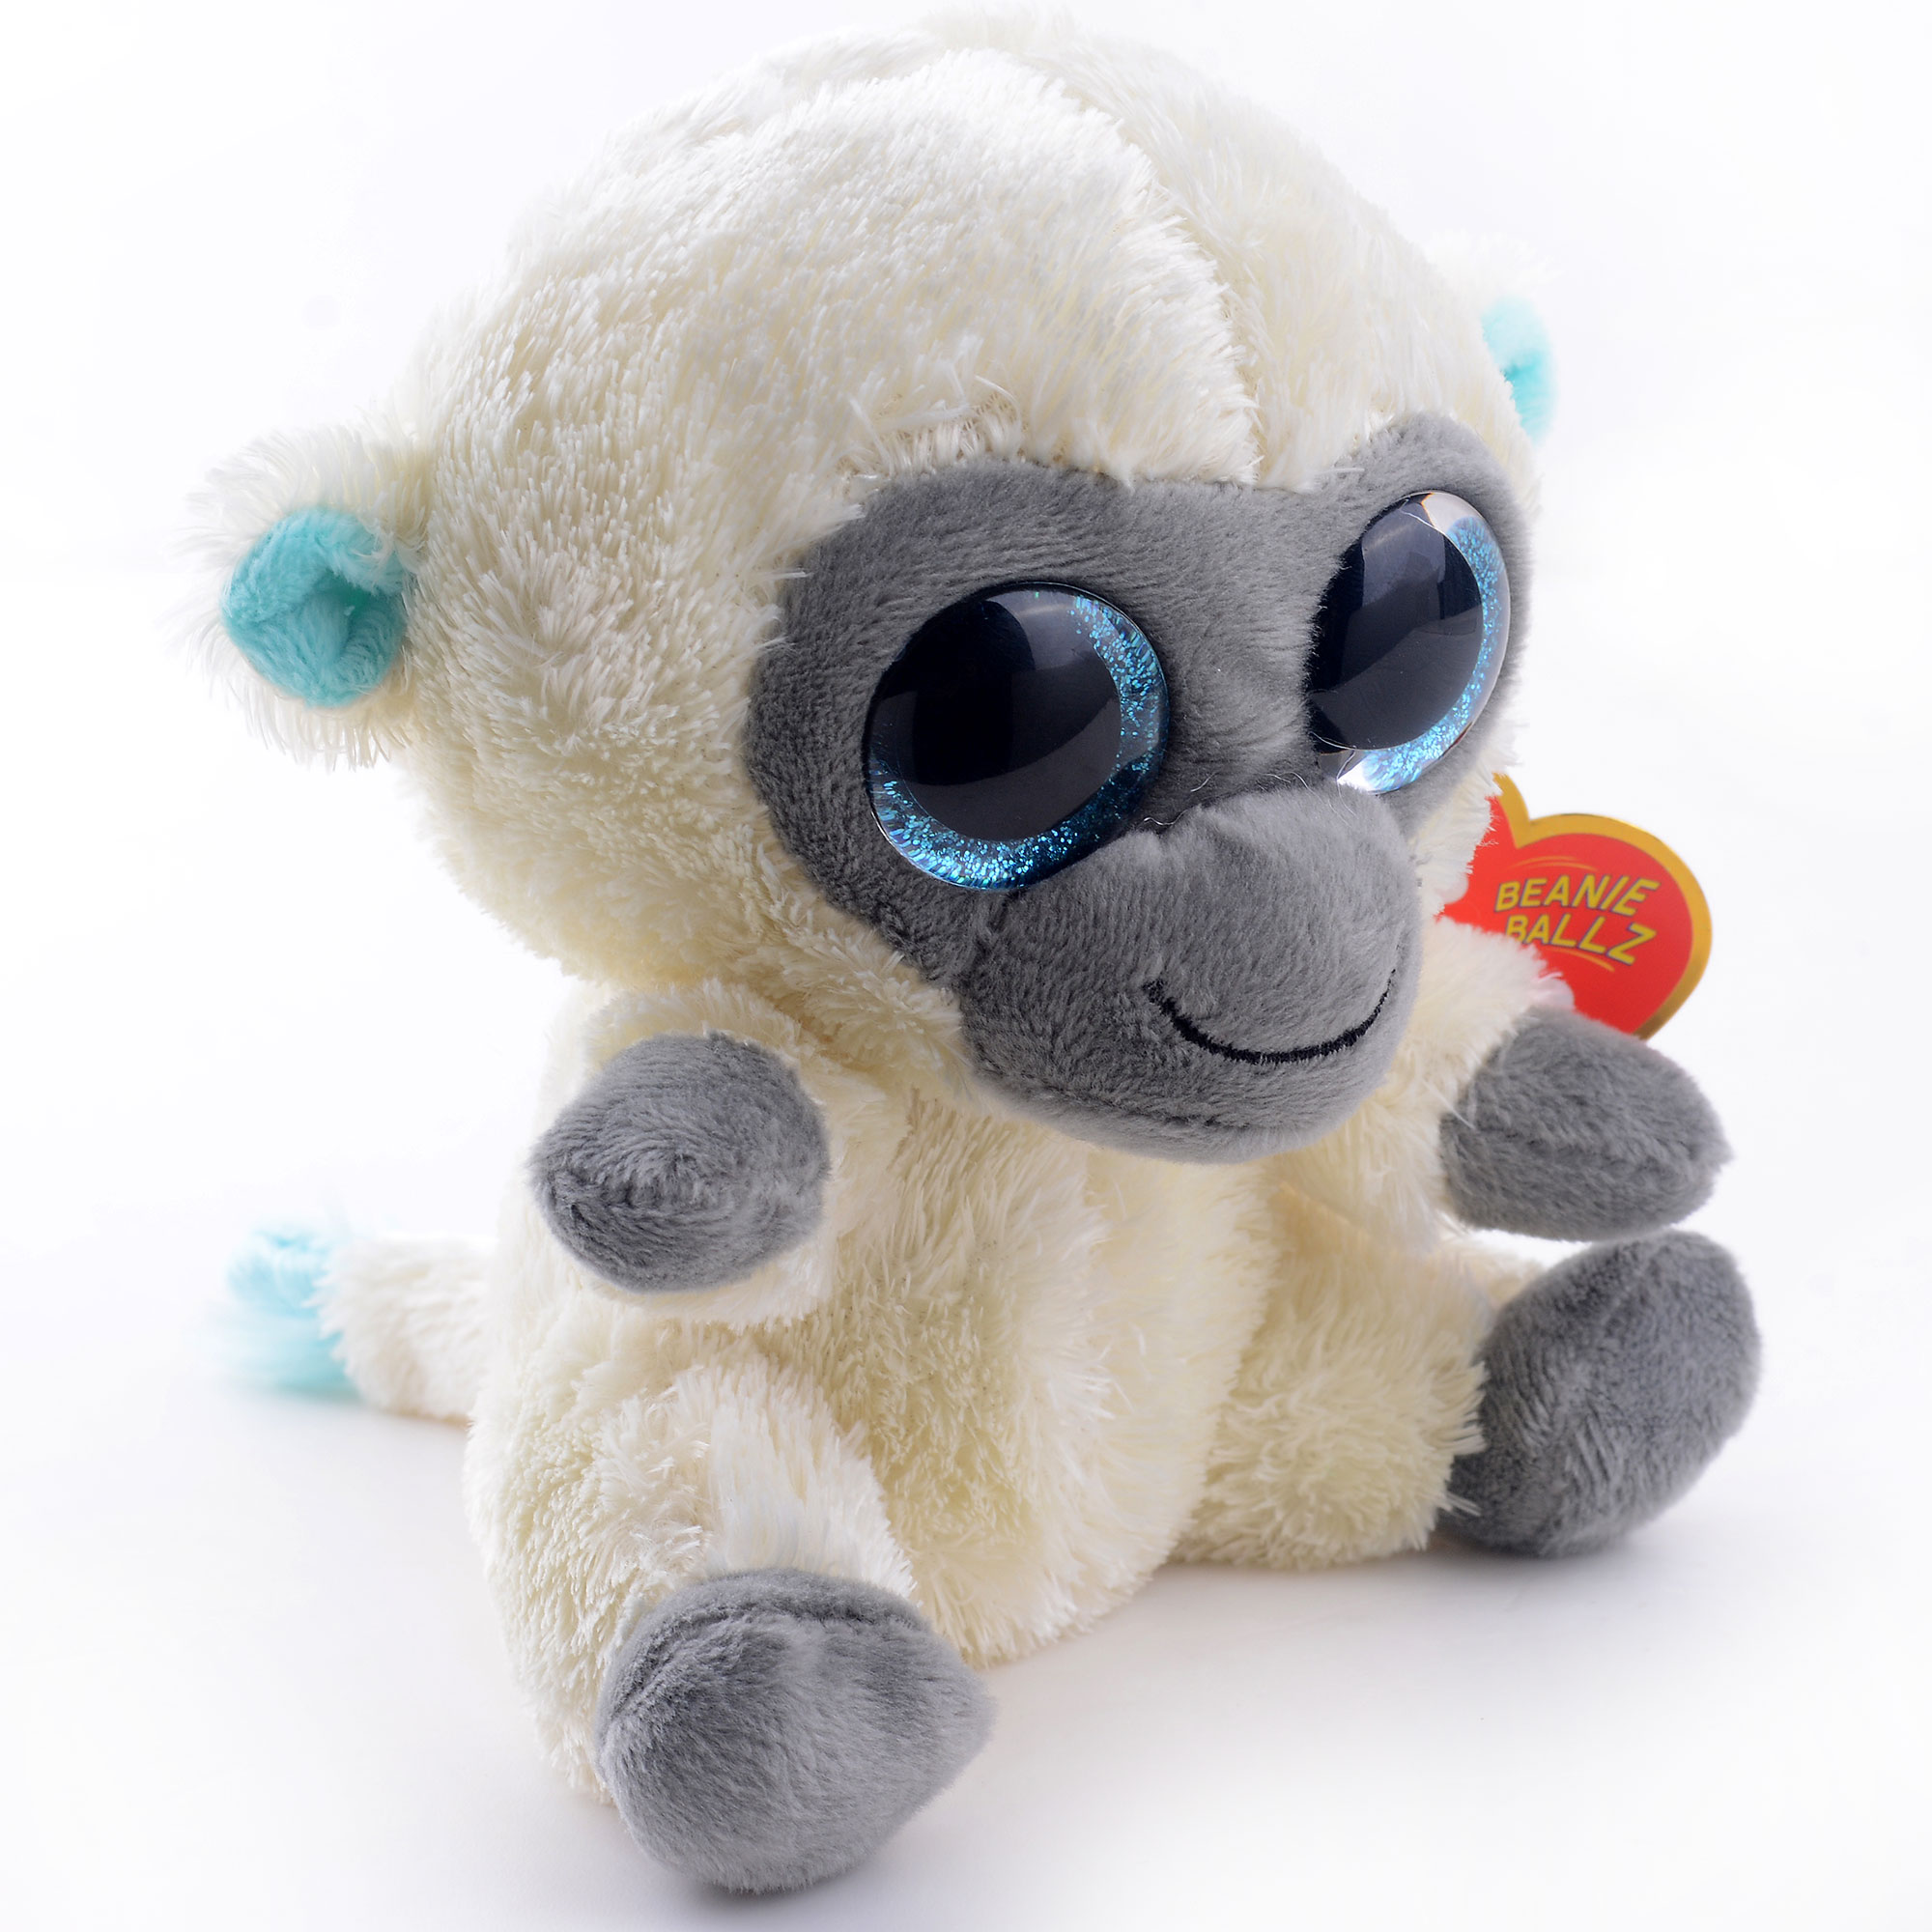 665bf001bda Cute 5   Original TY Collection MAGIC White Monkey Plush Toys Kids Small  Stuffed Animal Classic Doll Toy For Christmas Gift  LN-in Men s Costumes  from ...